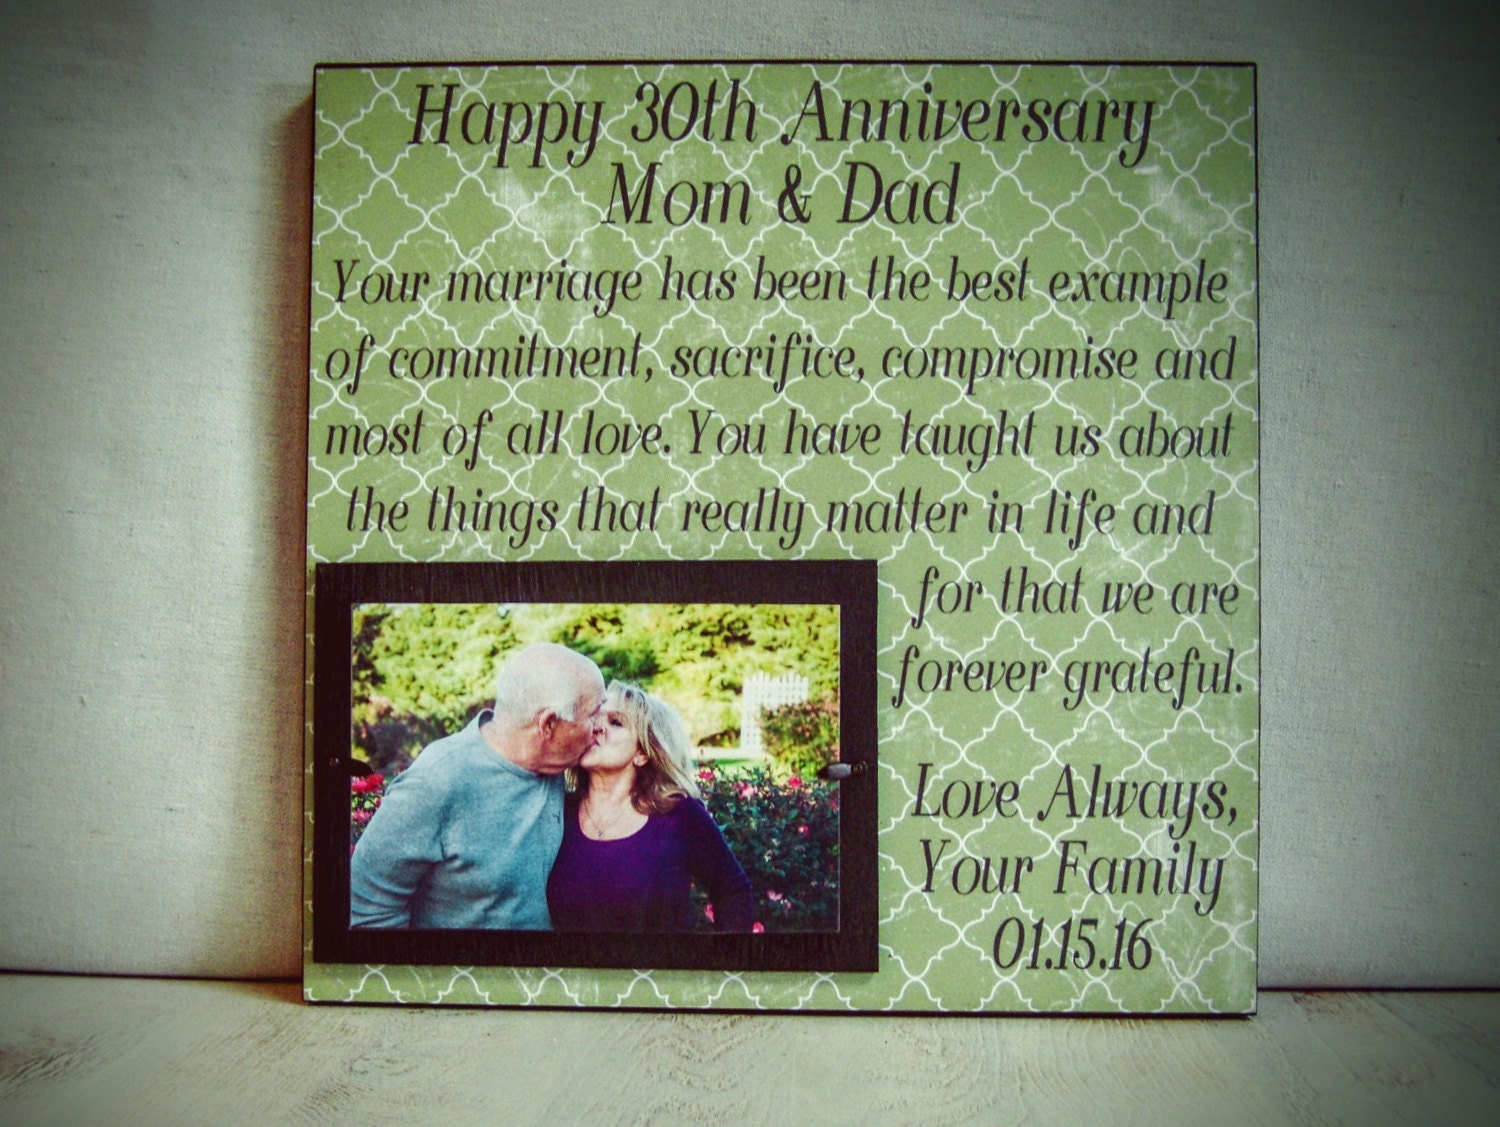 30th Wedding Anniversary Gifts For Mum And Dad: Personalized Anniversary Frame Wedding Anniversary